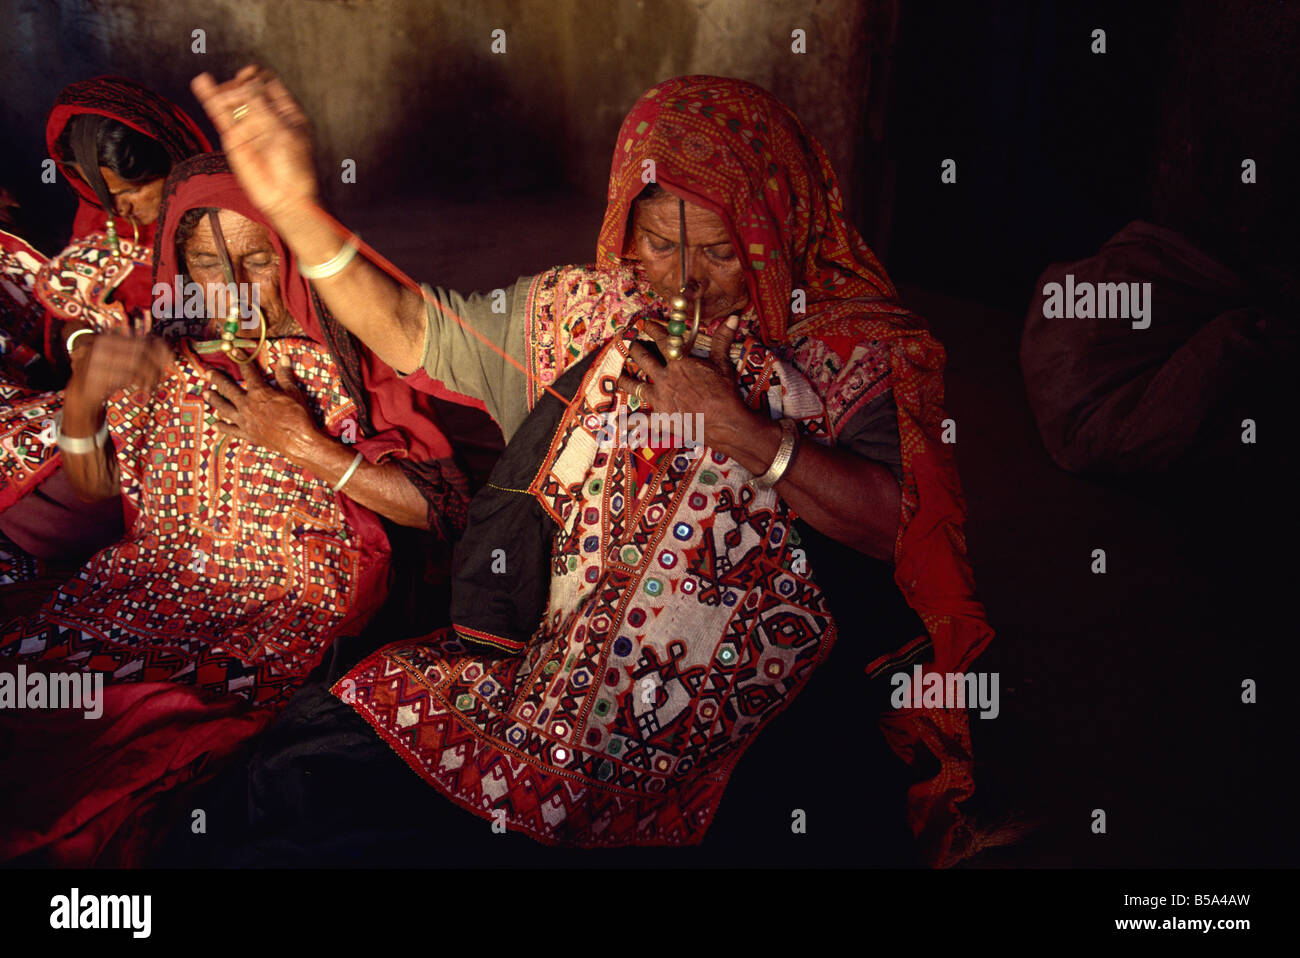 Muslim Jat tribes with gold nose rings famous for embroidery work Kutch district Gujarat state India Asia - Stock Image